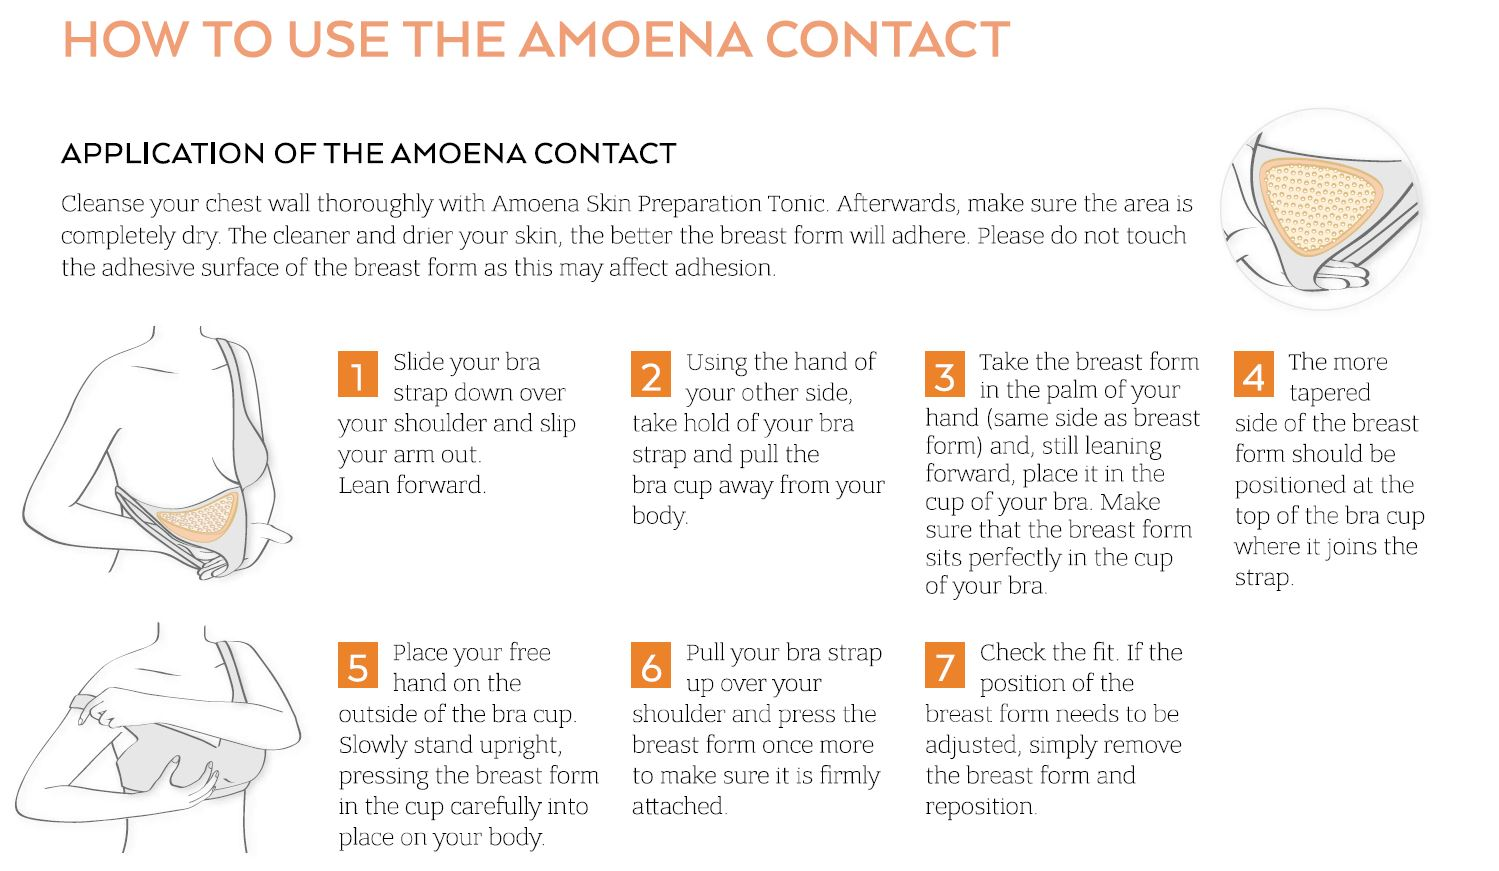 how-to-use-amoena-contact-form.jpg